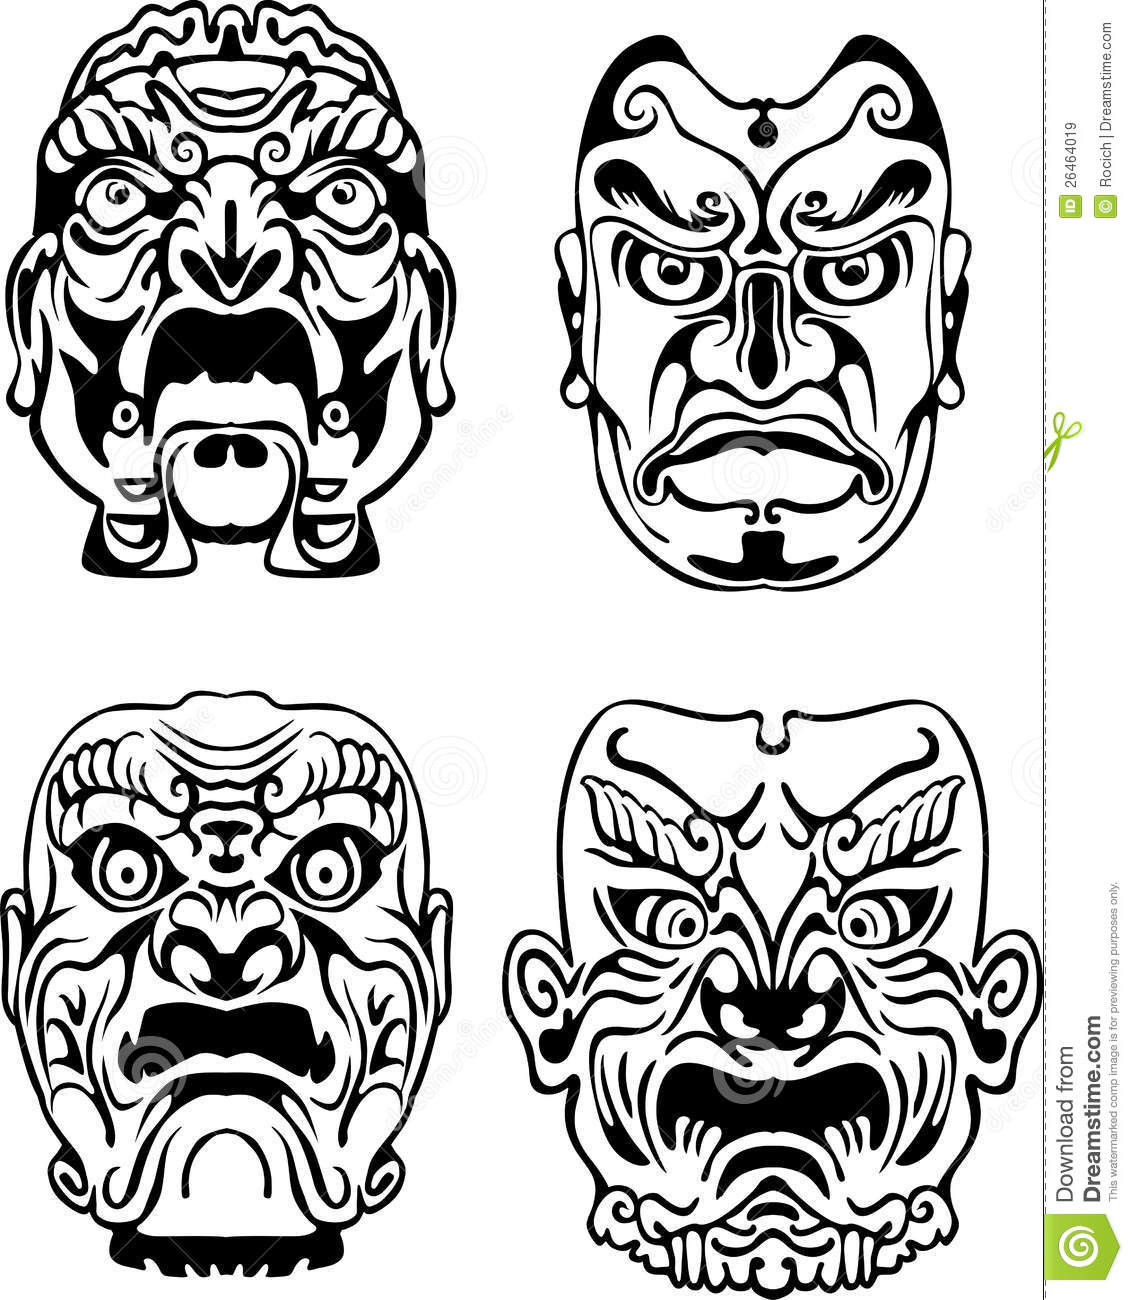 kabuki mask template - japanese noh theatrical masks royalty free stock images